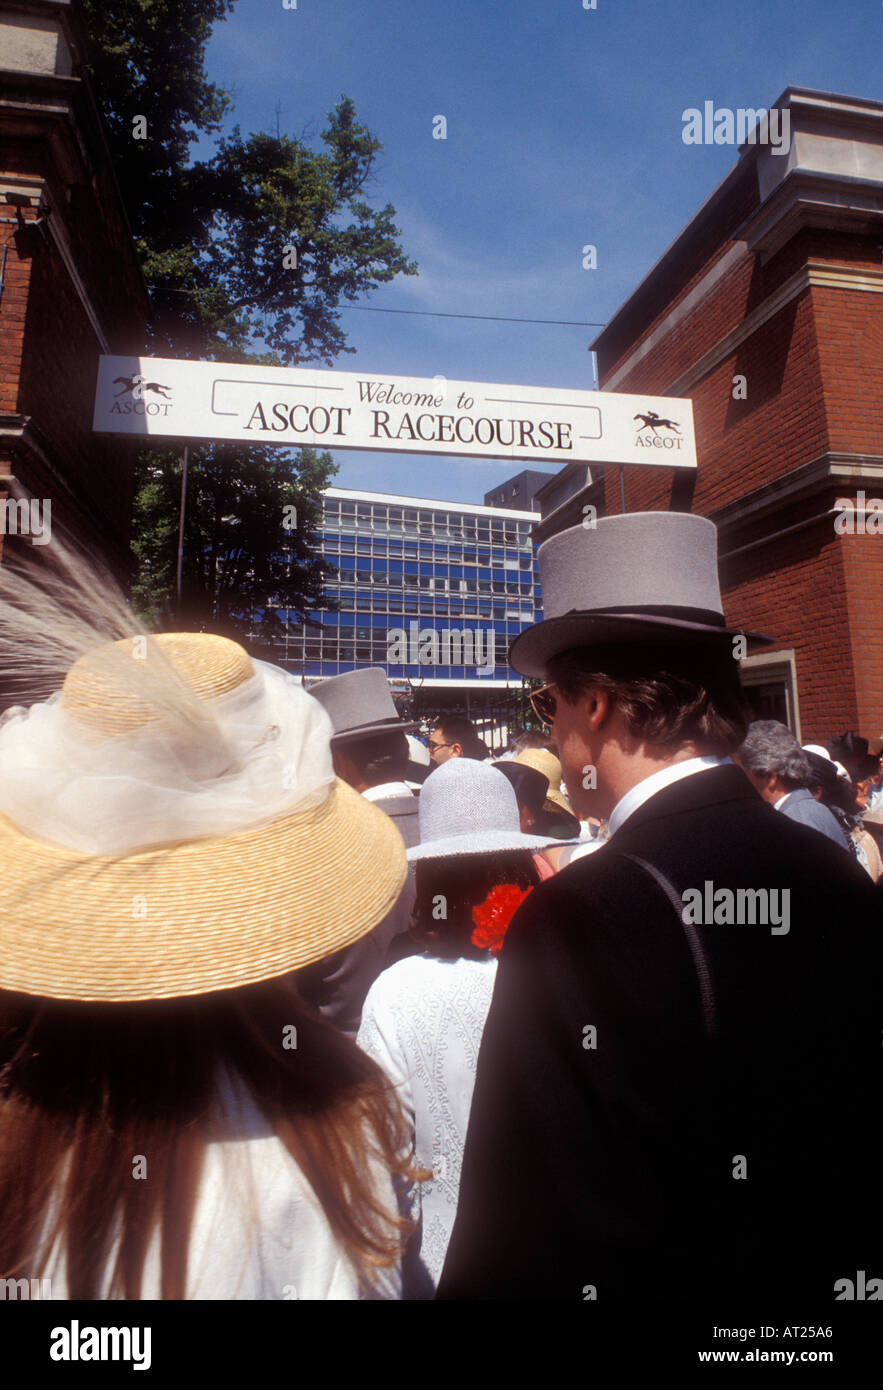 VINTAGE ASCOT RACES Ladies Day 1993 Historic archive fashion and style image of traditional Ladies Day entrance and race-goers at Royal Ascot 1990's - Stock Image